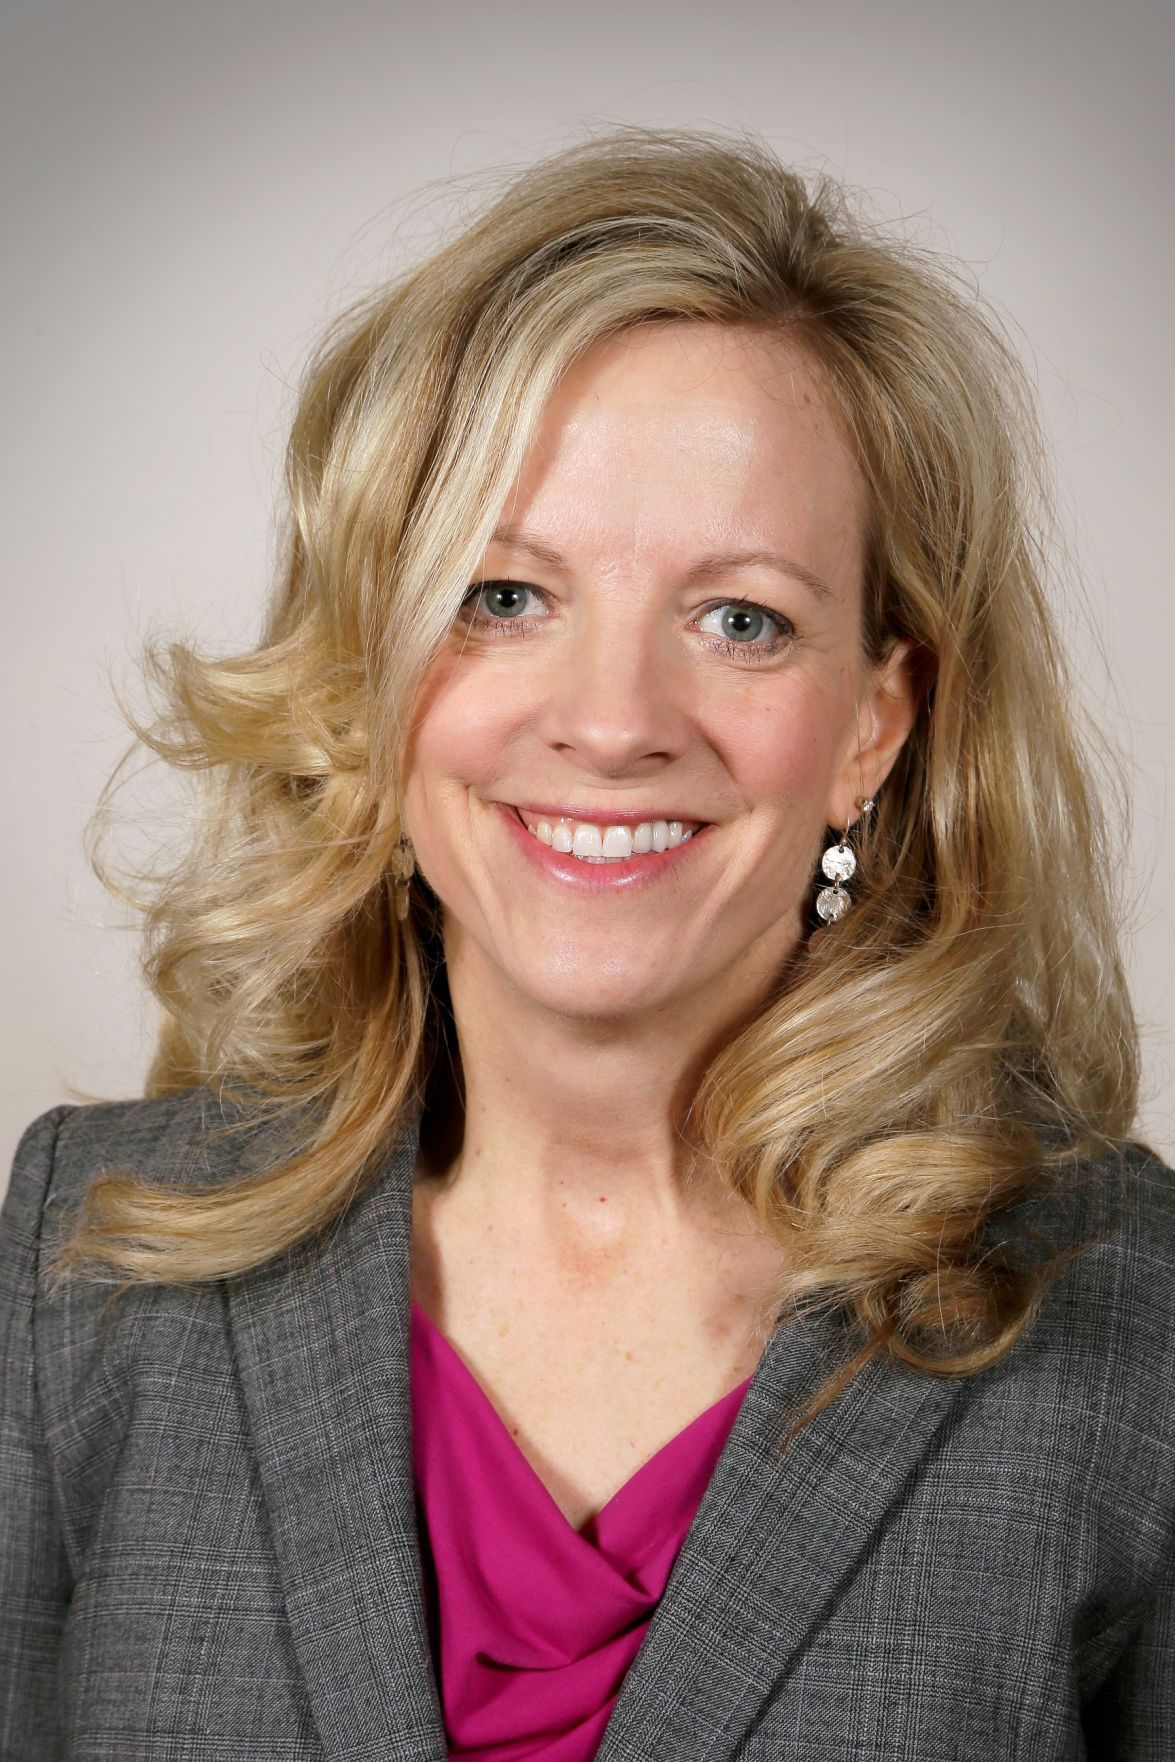 Iowa state Sen. Janet Petersen